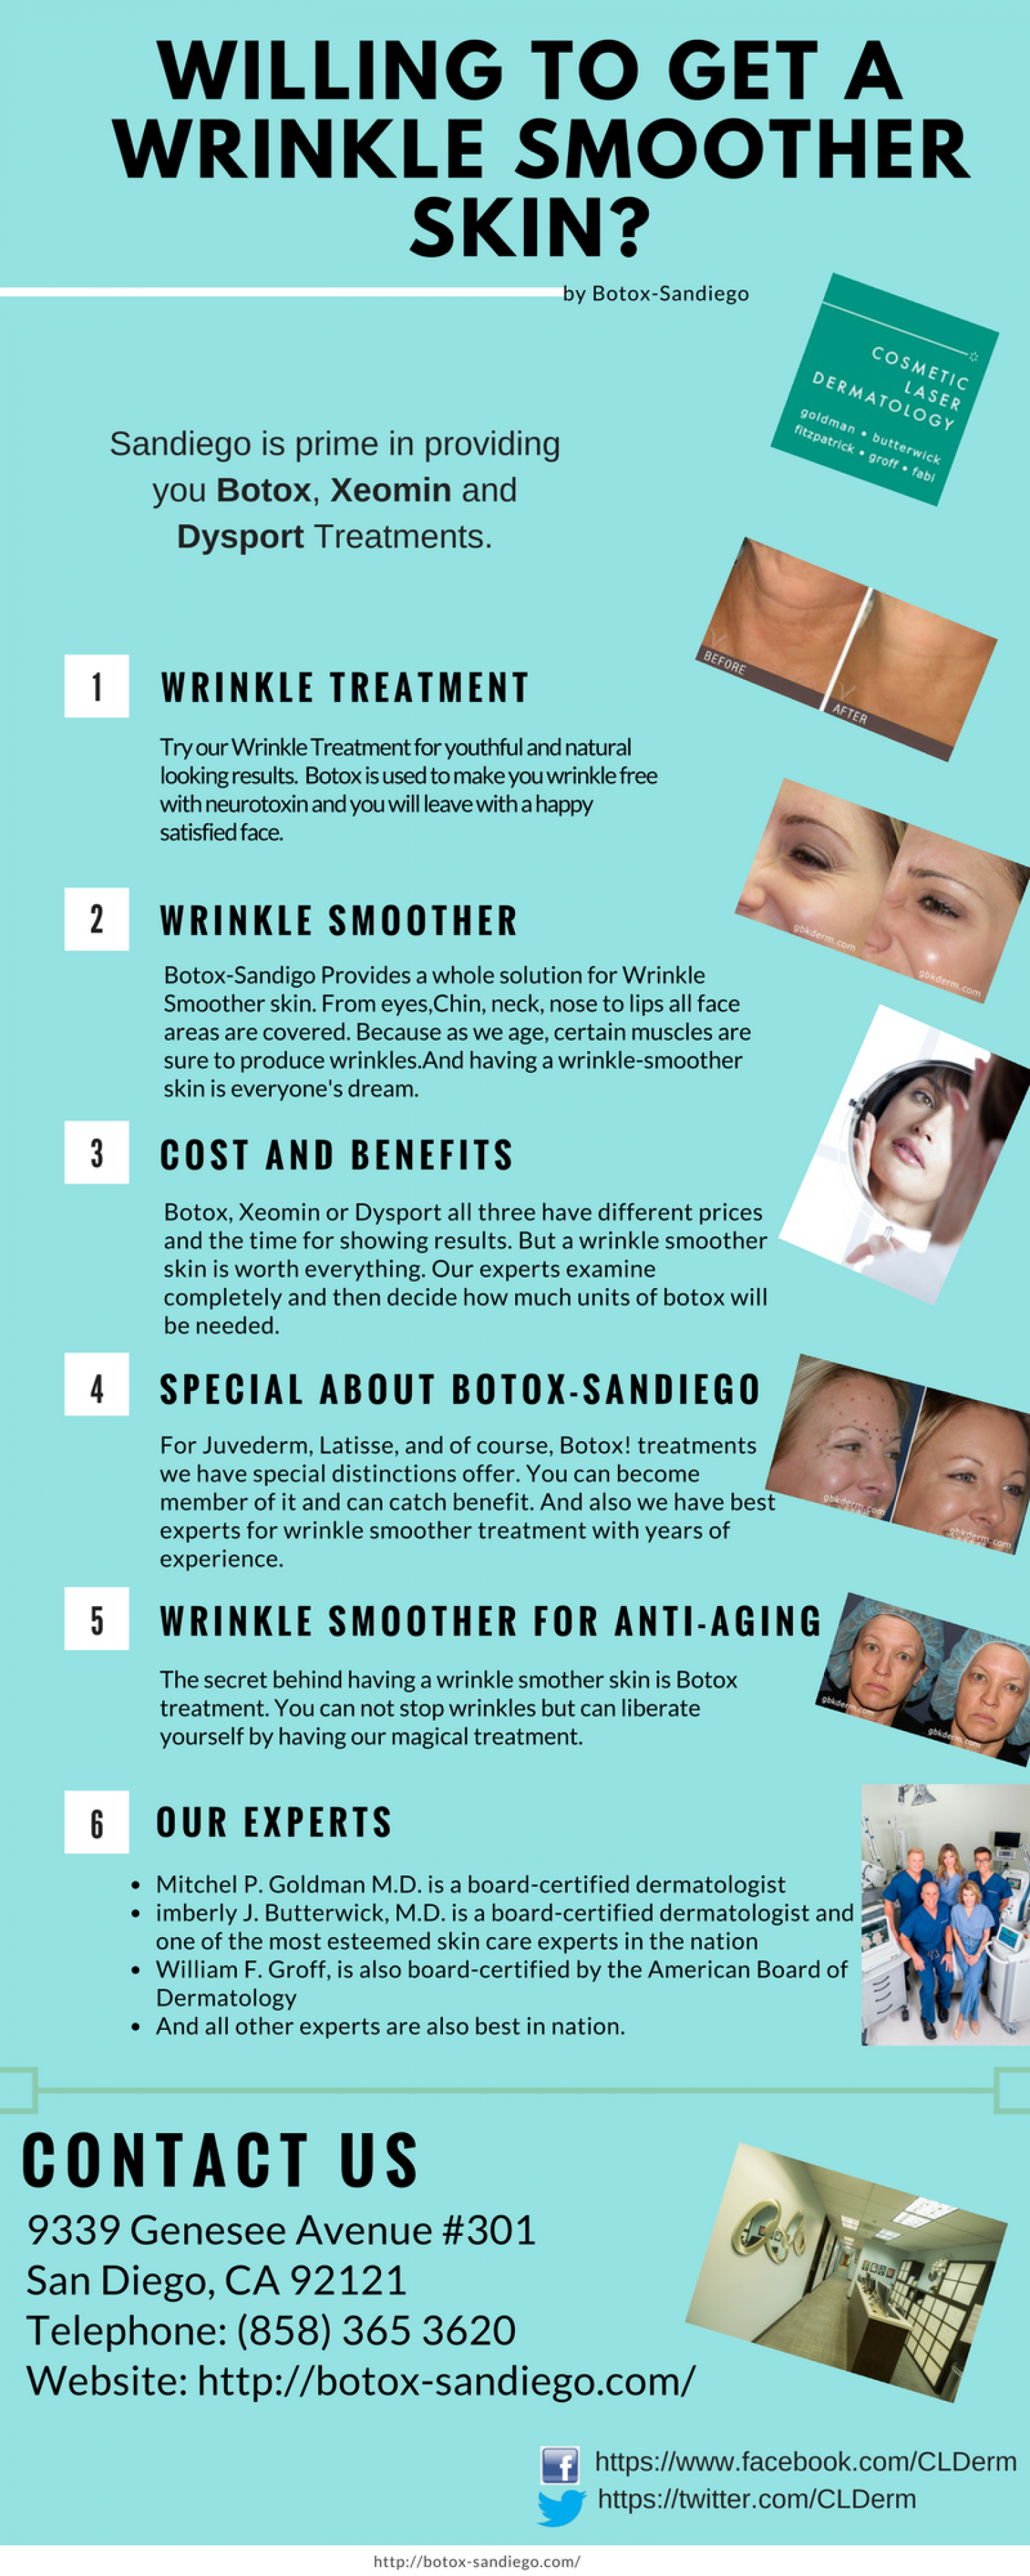 Wrinkle smoother Infographic